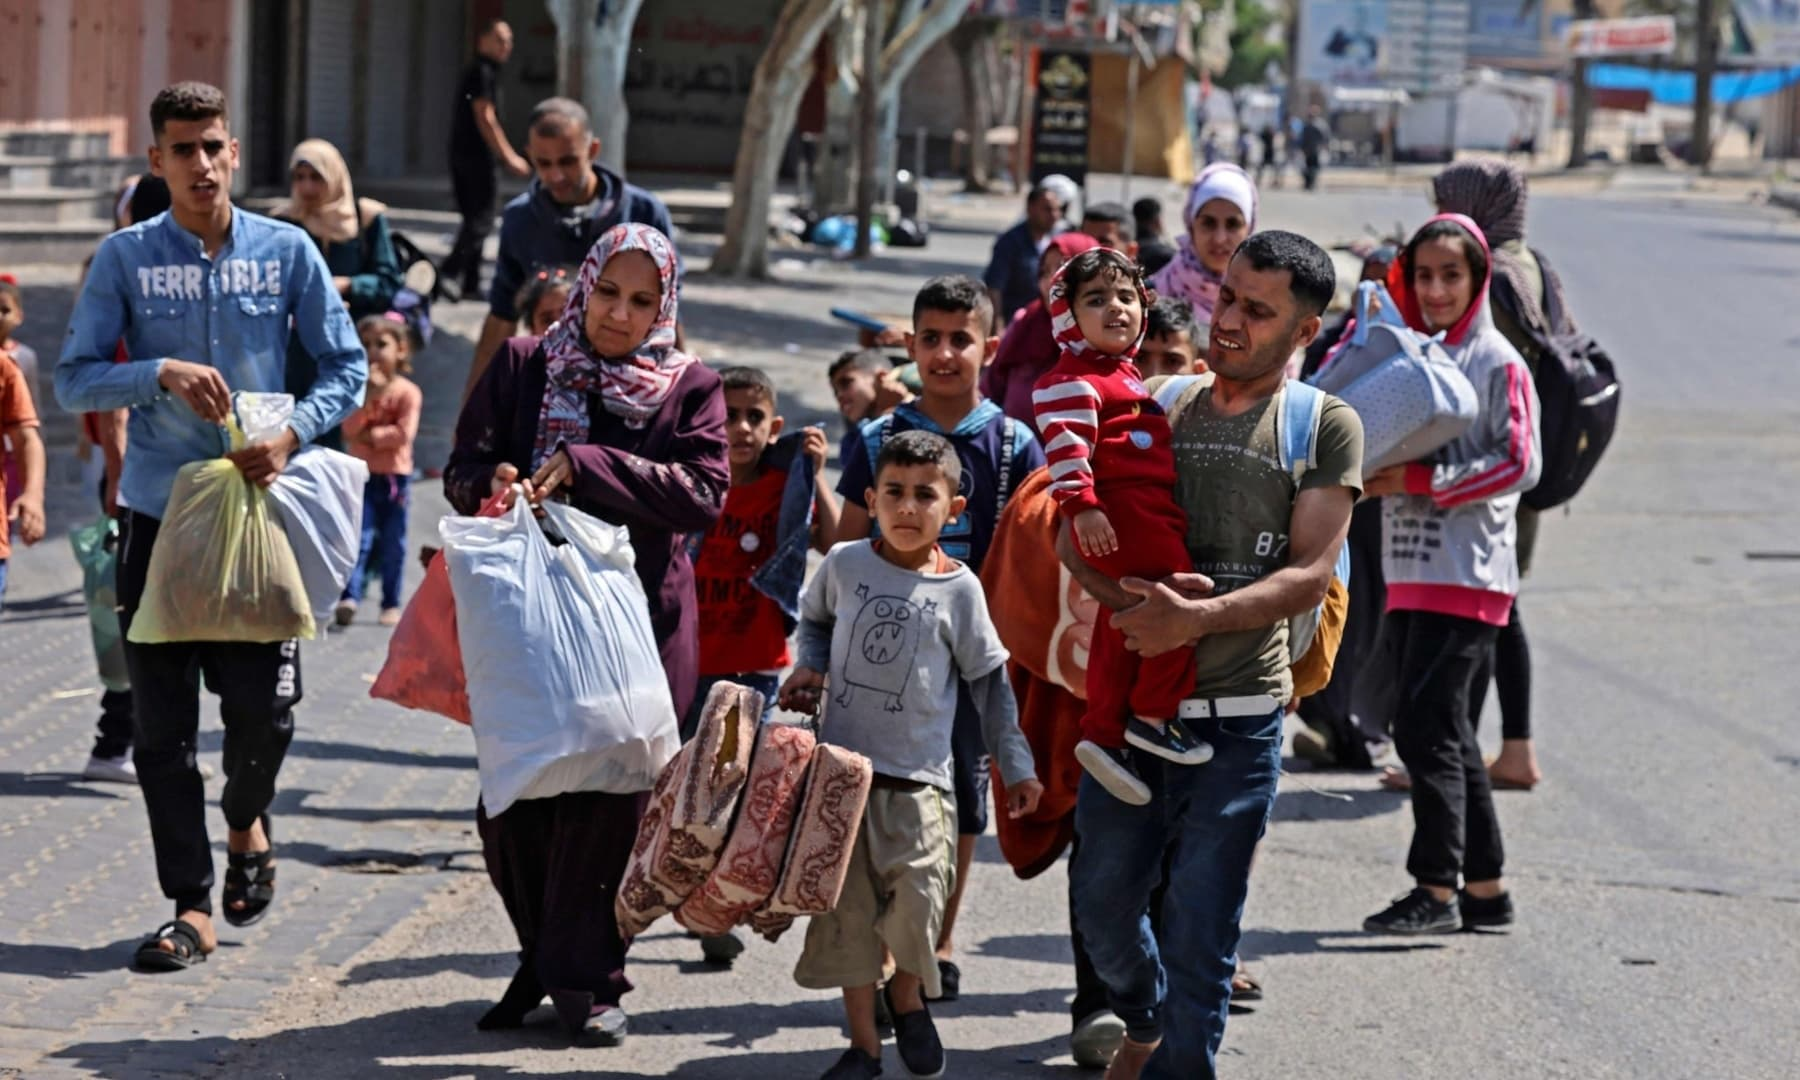 Palestinians carry some of their belongings in Beit Hanun in the northern Gaza Strip, as they flee Israeli air and artillery strikes, to a safer location, May 14, 2021. — AFP